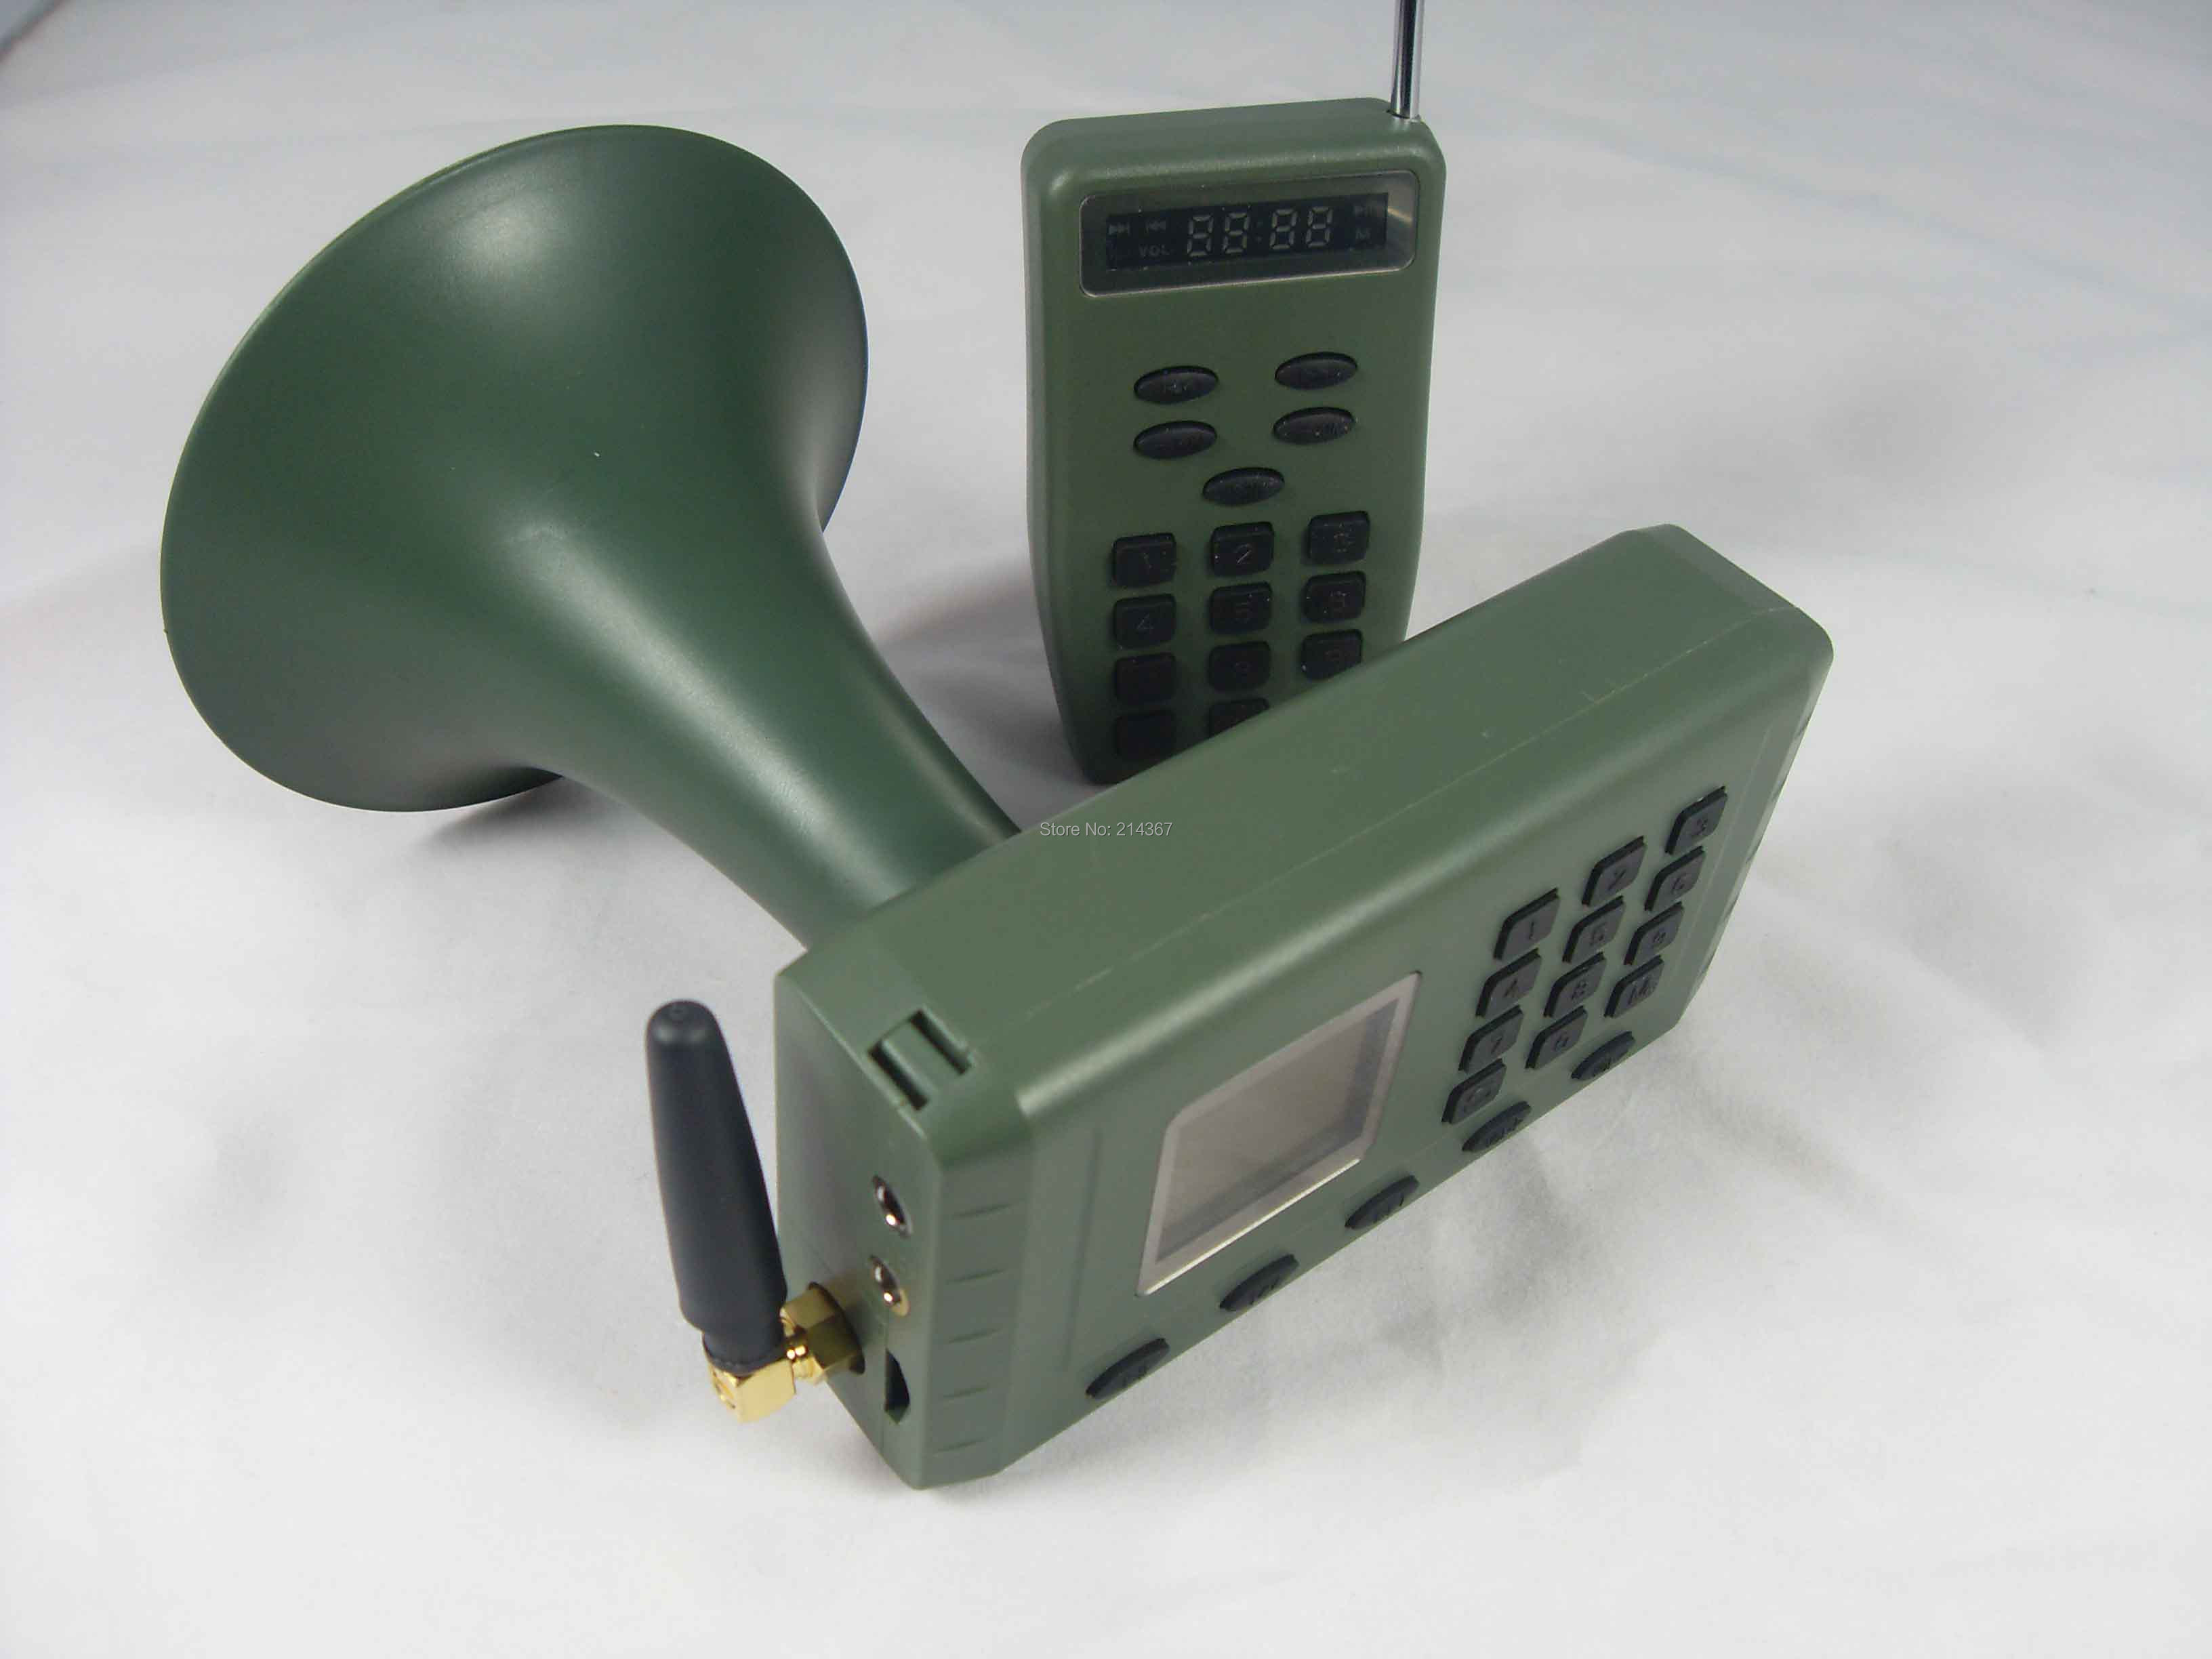 110 Sounds Wildlife Animal Duck Callers Hunting Bird Call for Hunter Product 2017 wireless remote control sounds electronics hunting bird mp3 player bird caller 210 bird animal sounds decoy goose duck call